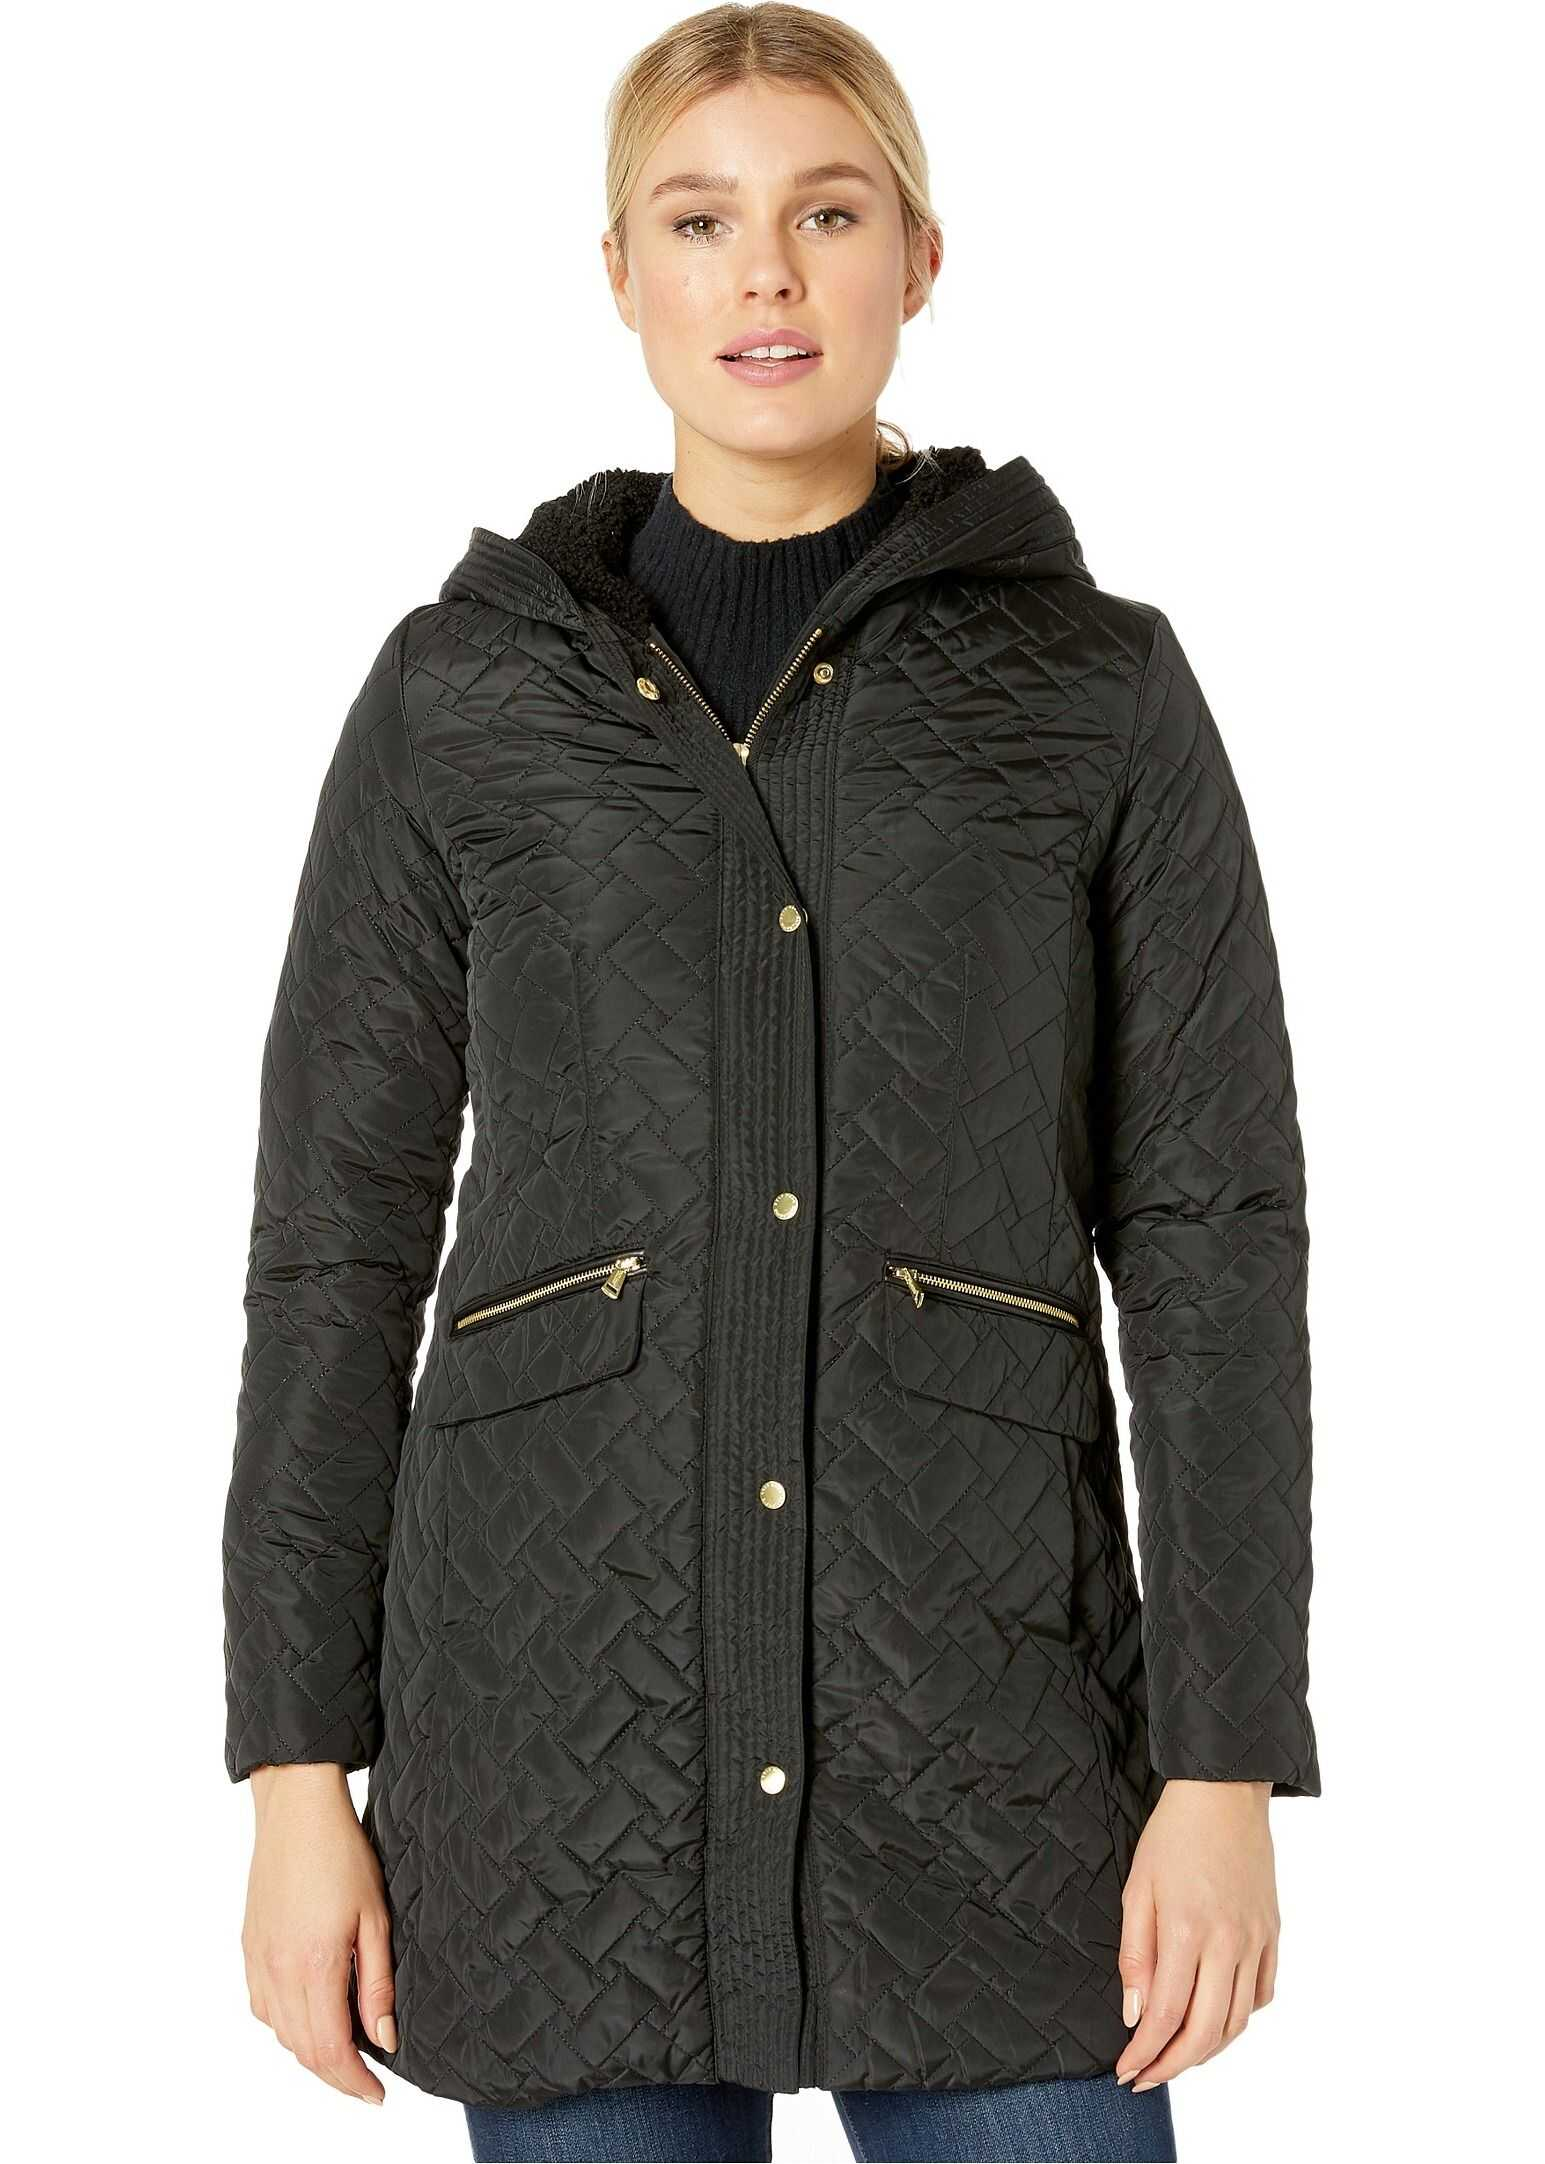 Cole Haan Quilted Faux Sherpa Lined Jacket Black